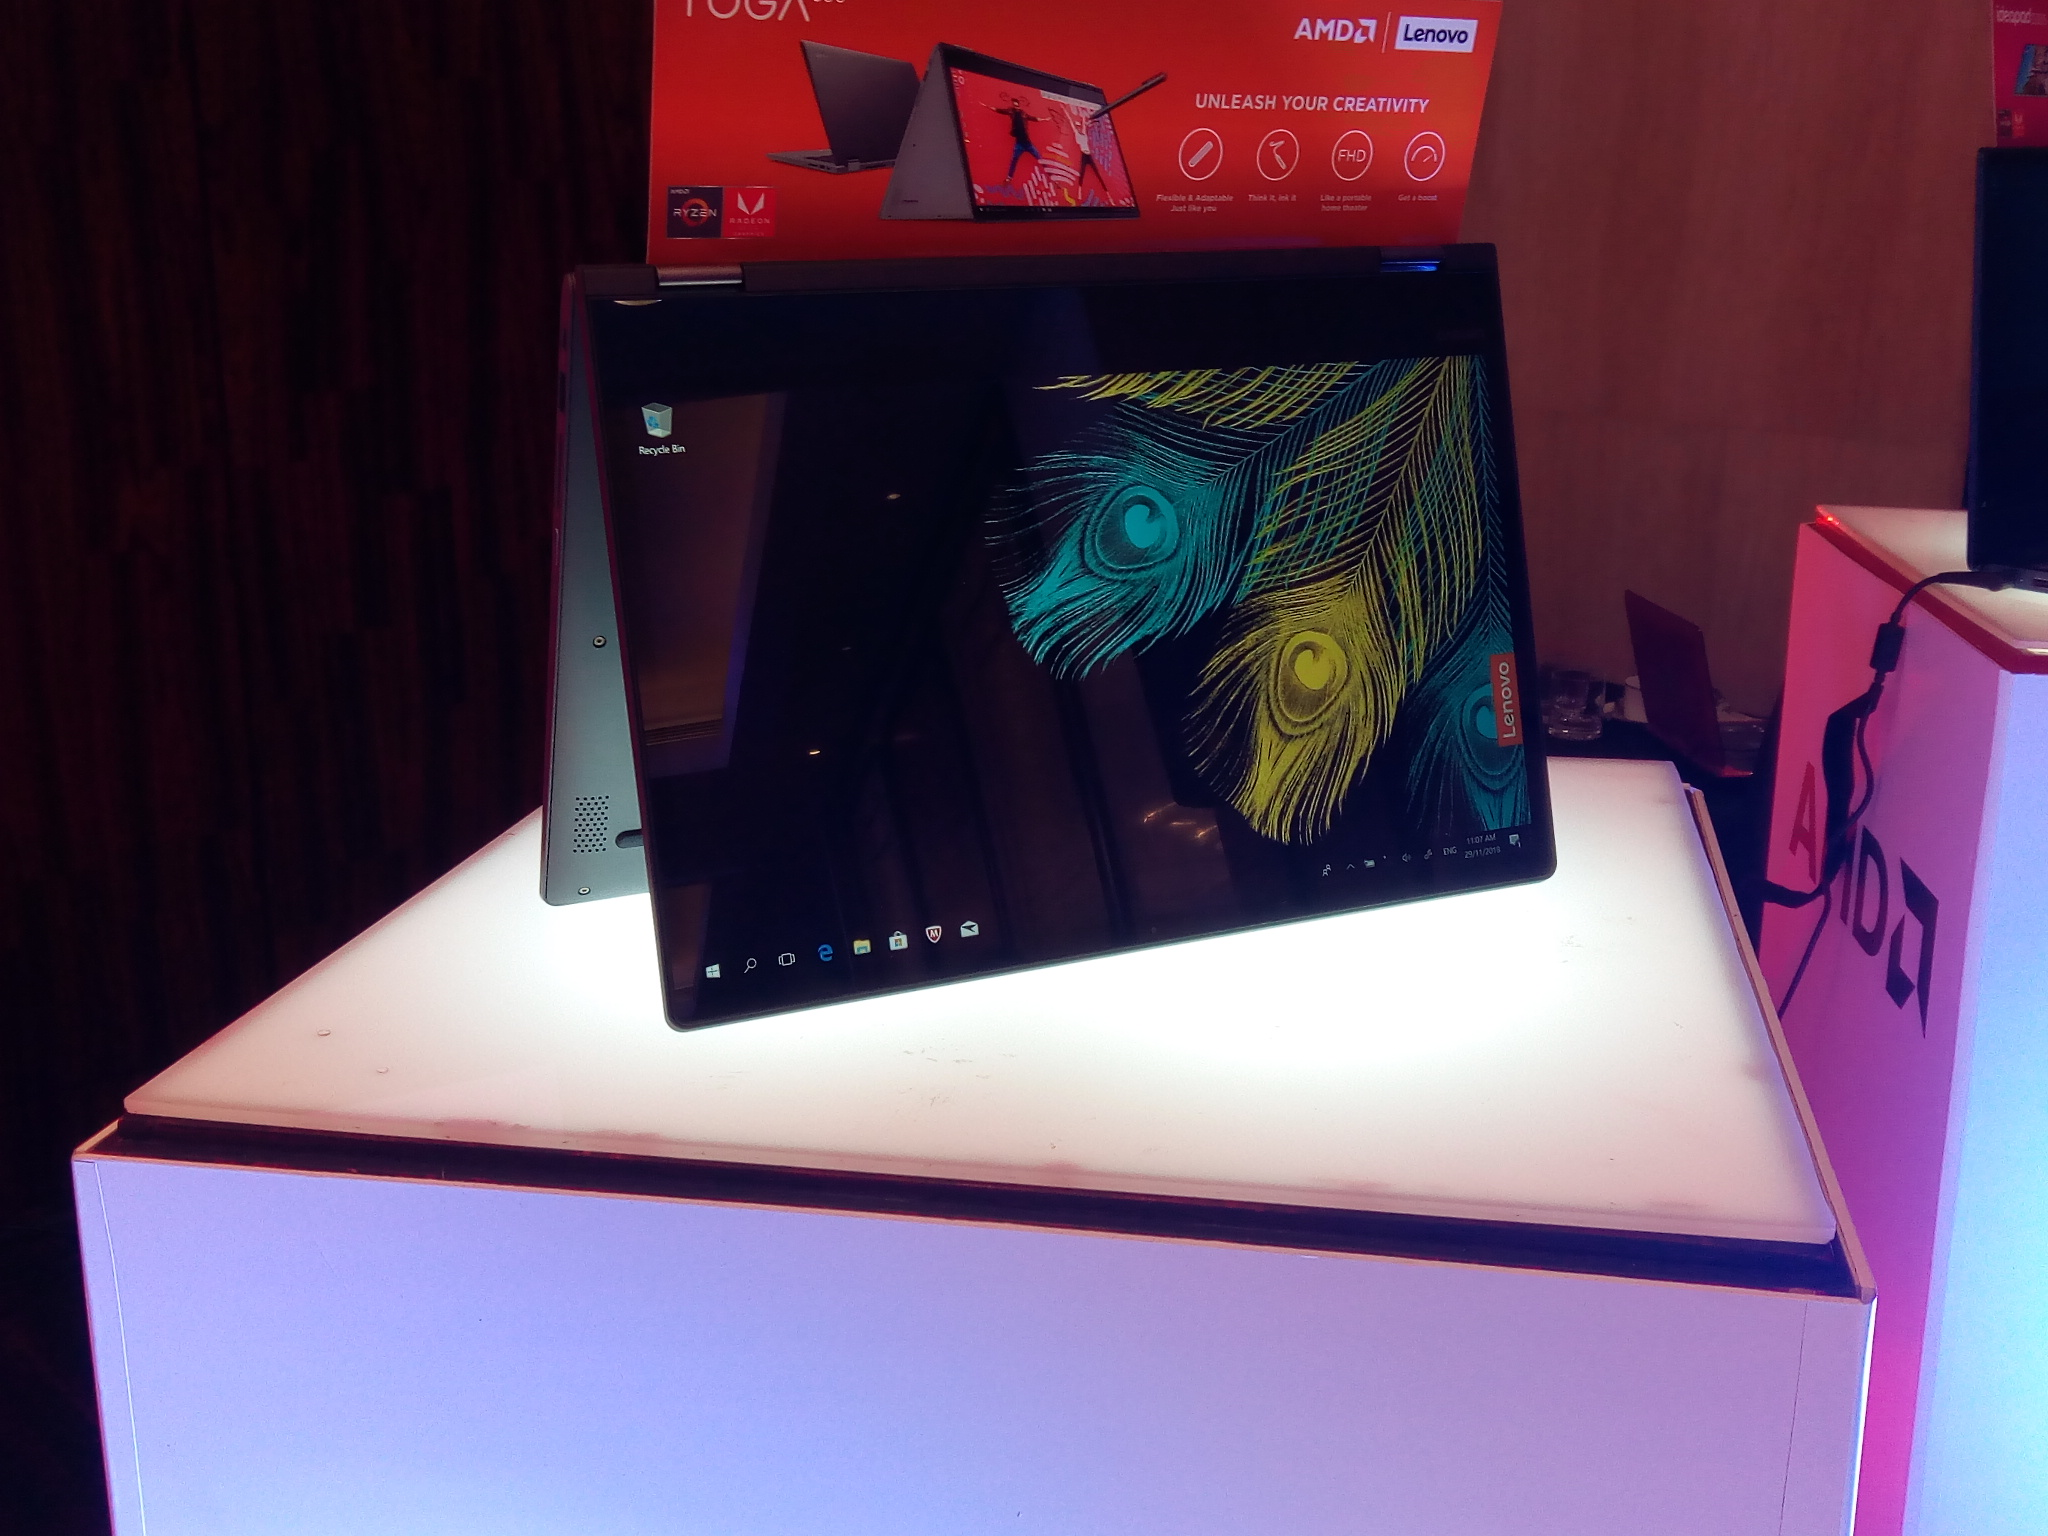 Lenovo strengthens PH product line, launches new AMD-powered laptops